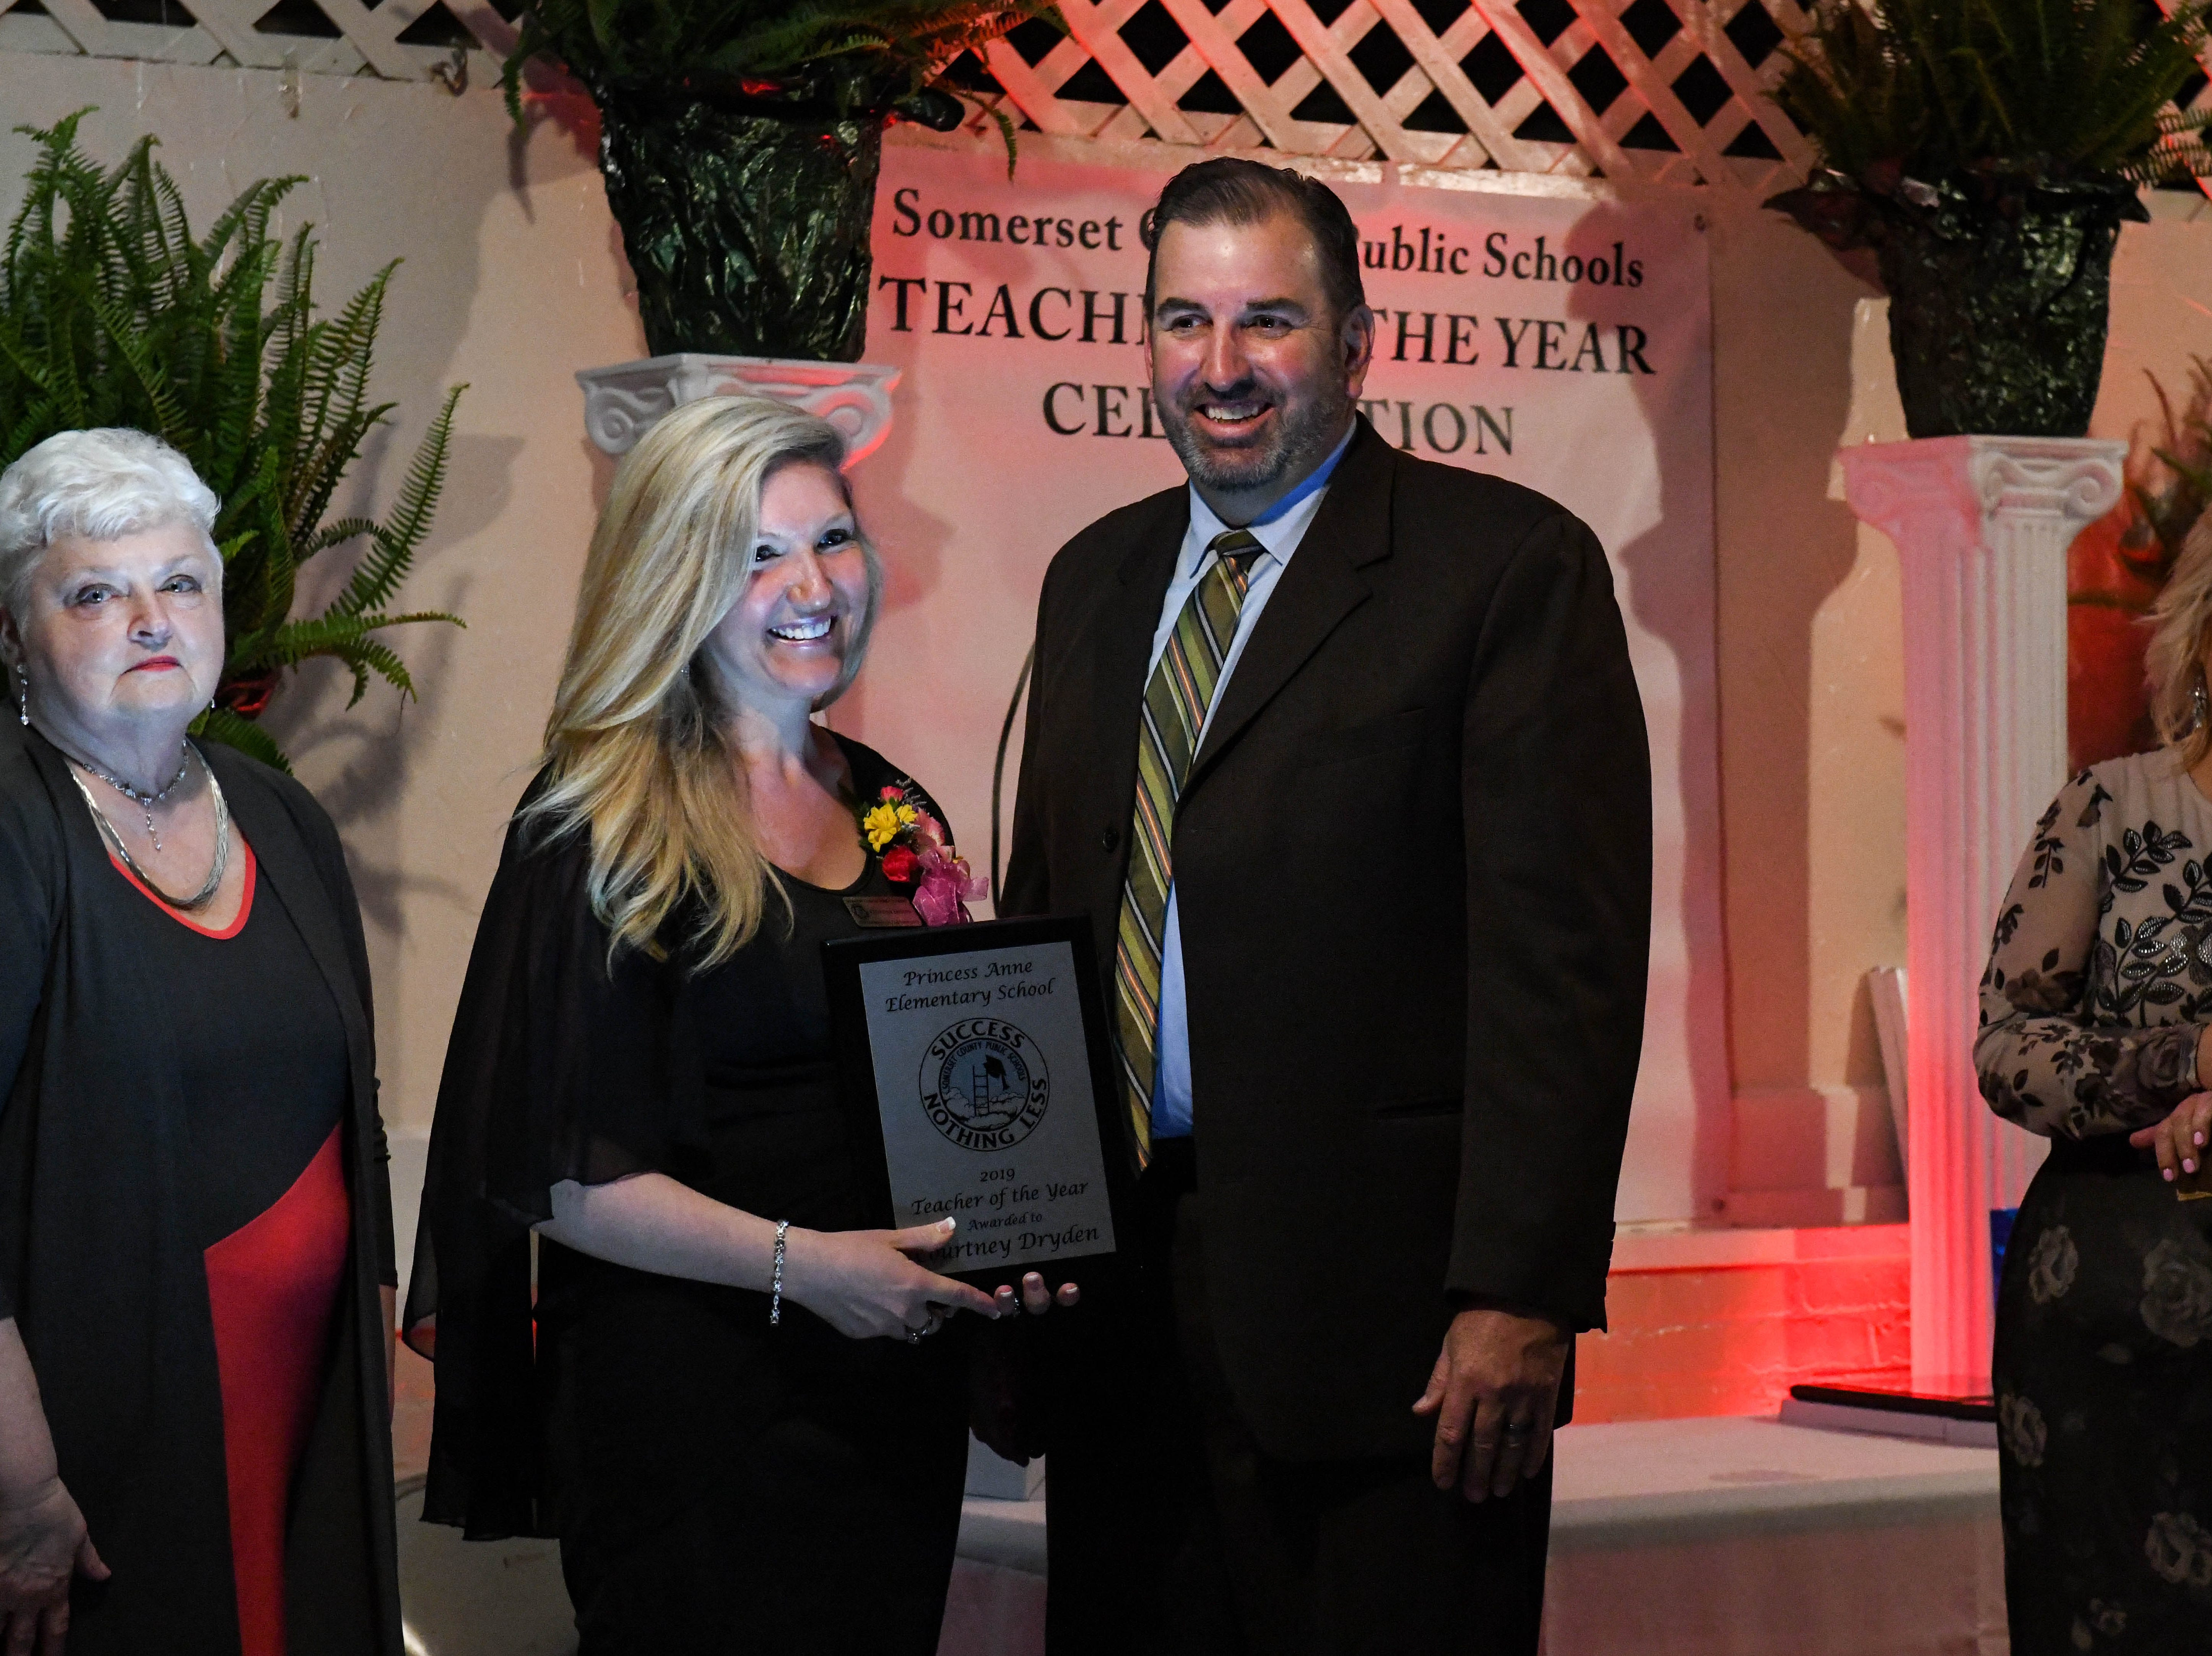 Princess Anne Elementary teacher Courtney Dryden receives a plaque for her teacher of the year nomination at the banquet on Friday, April 5, 2019.